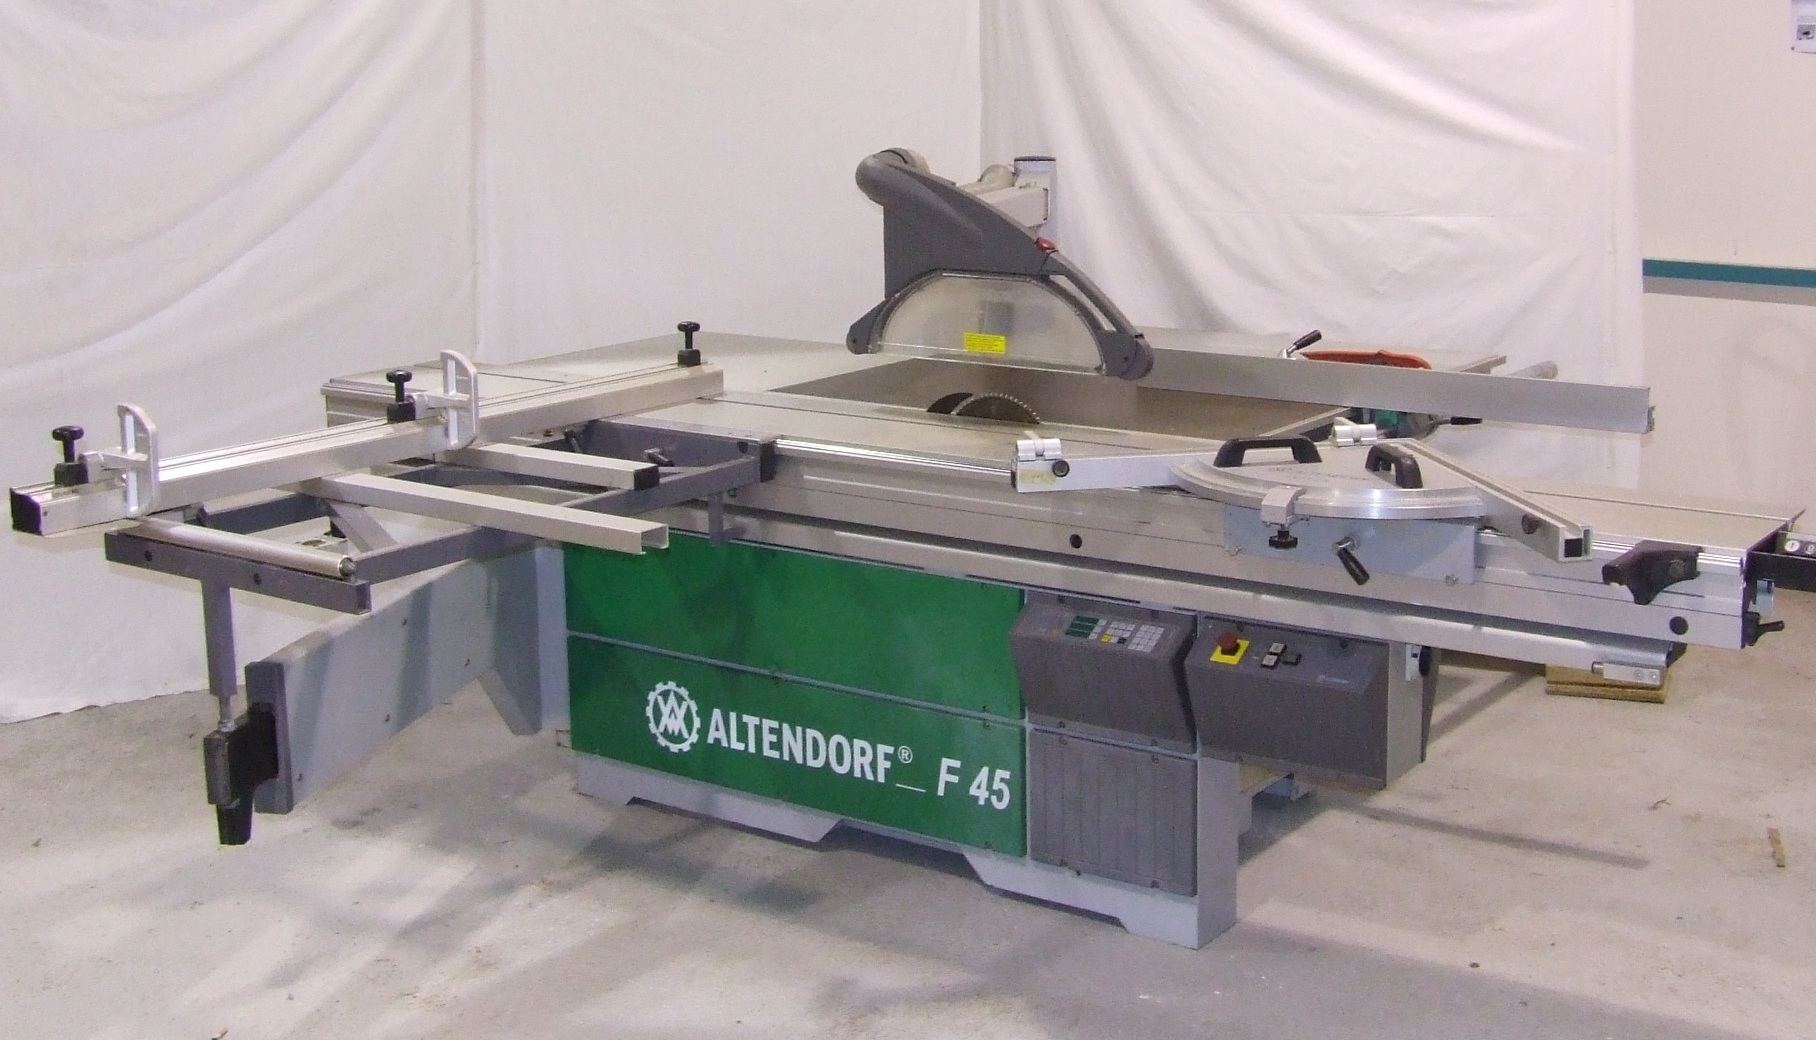 Altendorf F45 Panel saw